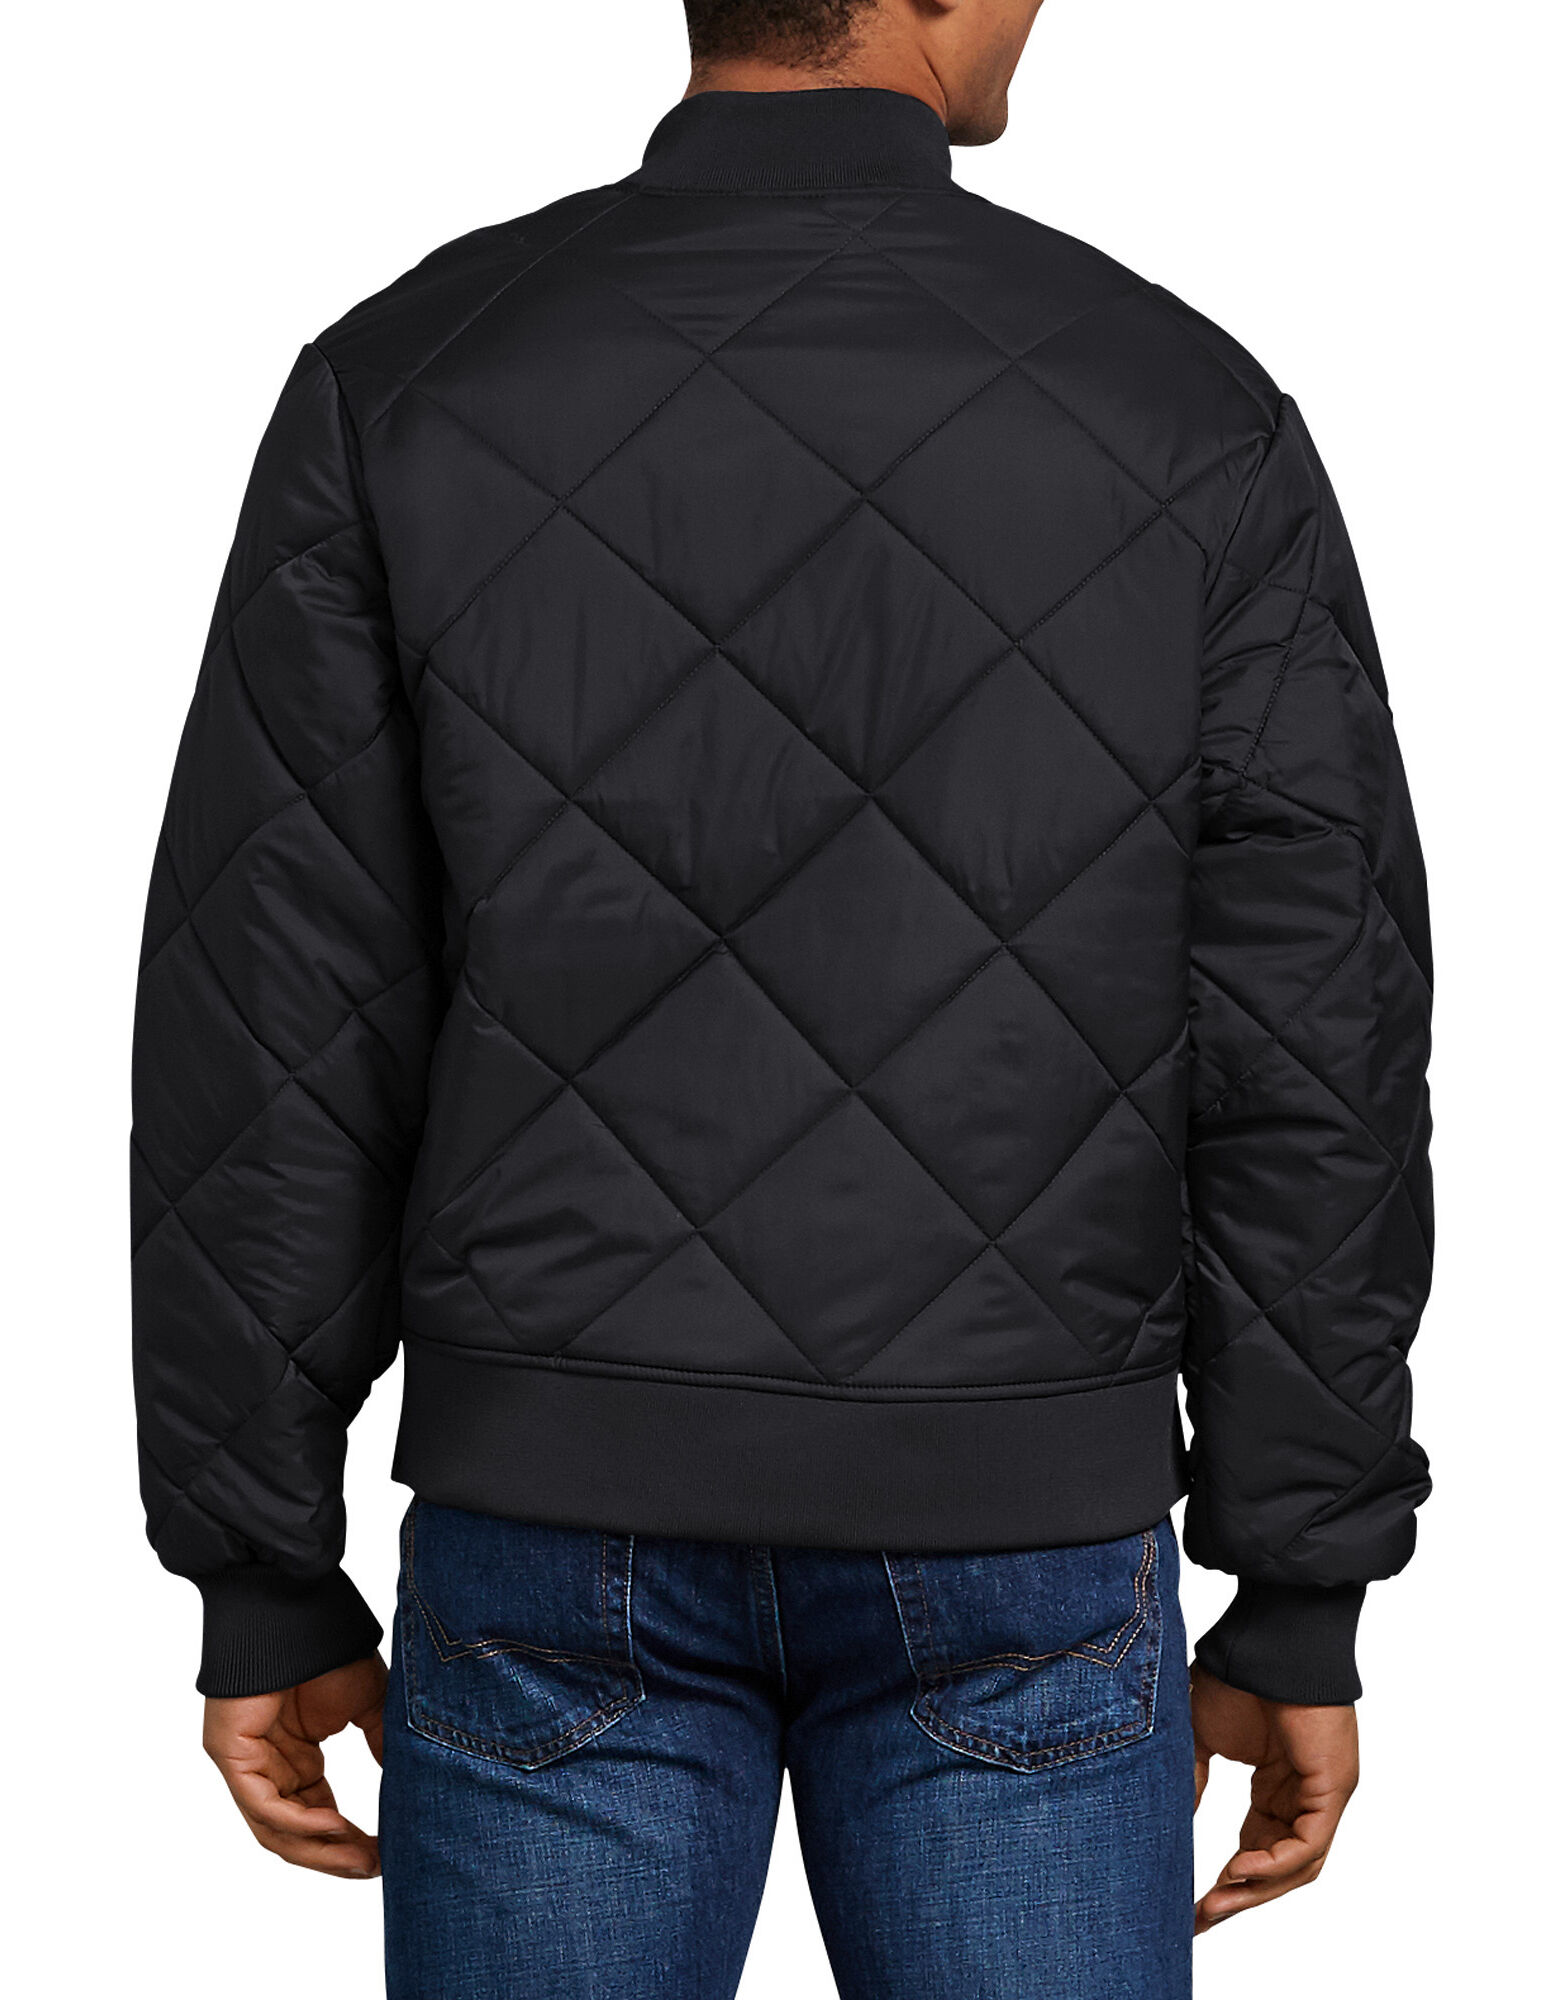 Free shipping and returns on Women's Black Quilted Coats at dirtyinstalzonevx6.ga